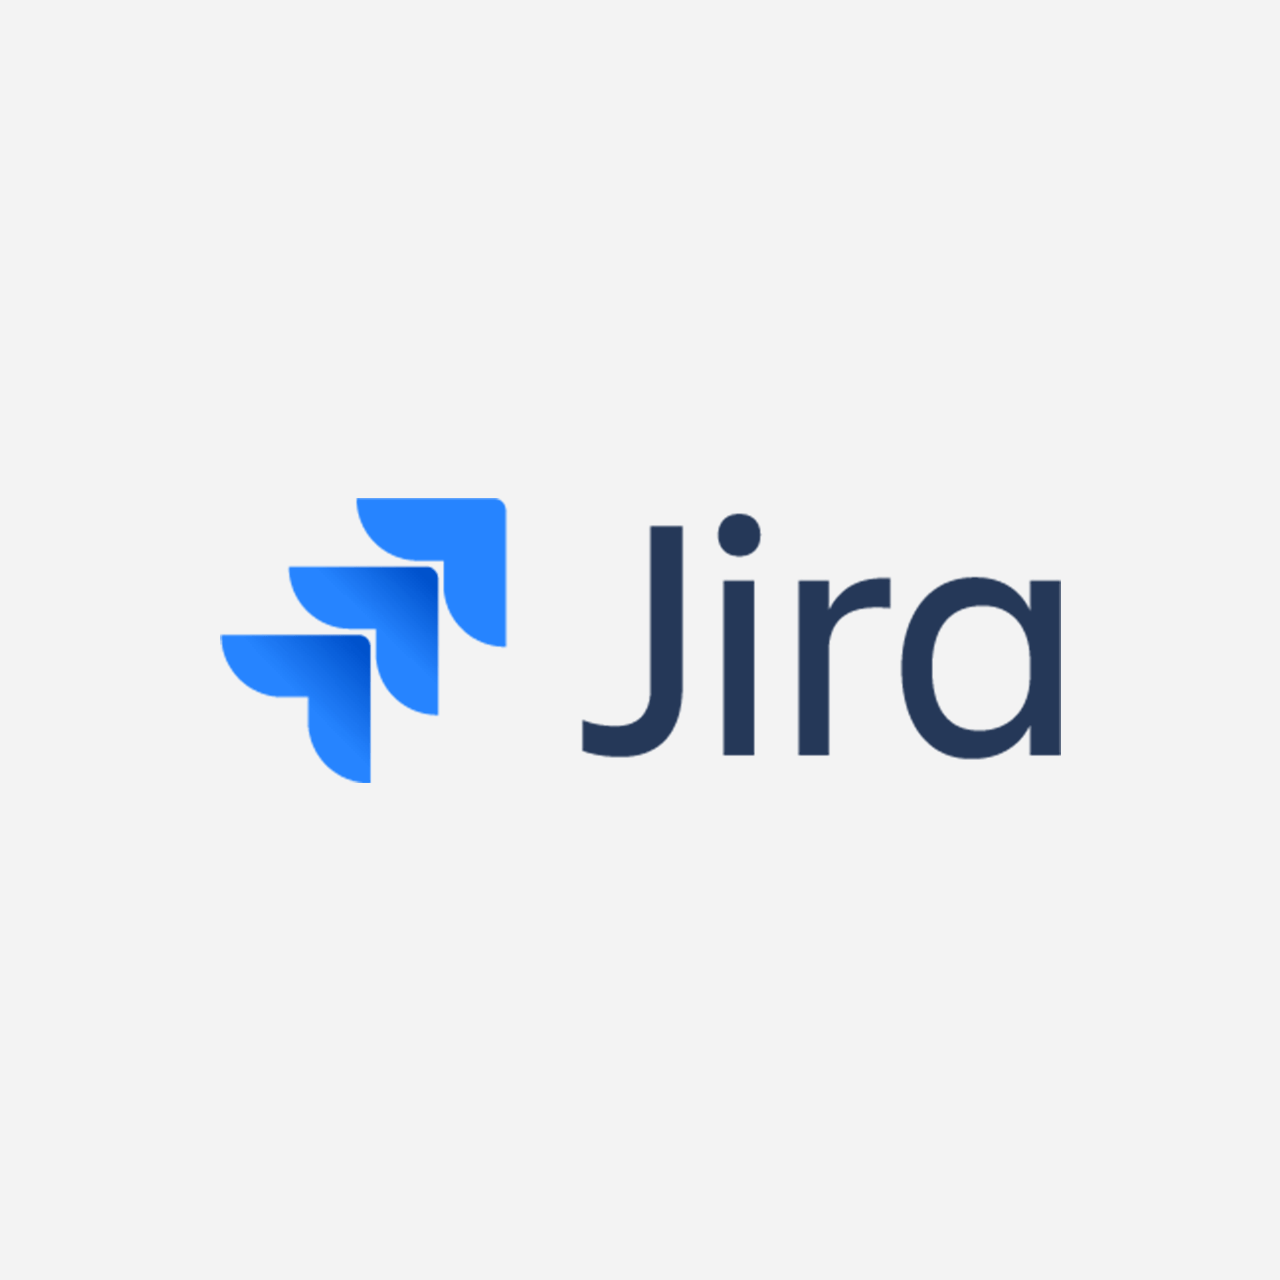 Jira by Atlassian